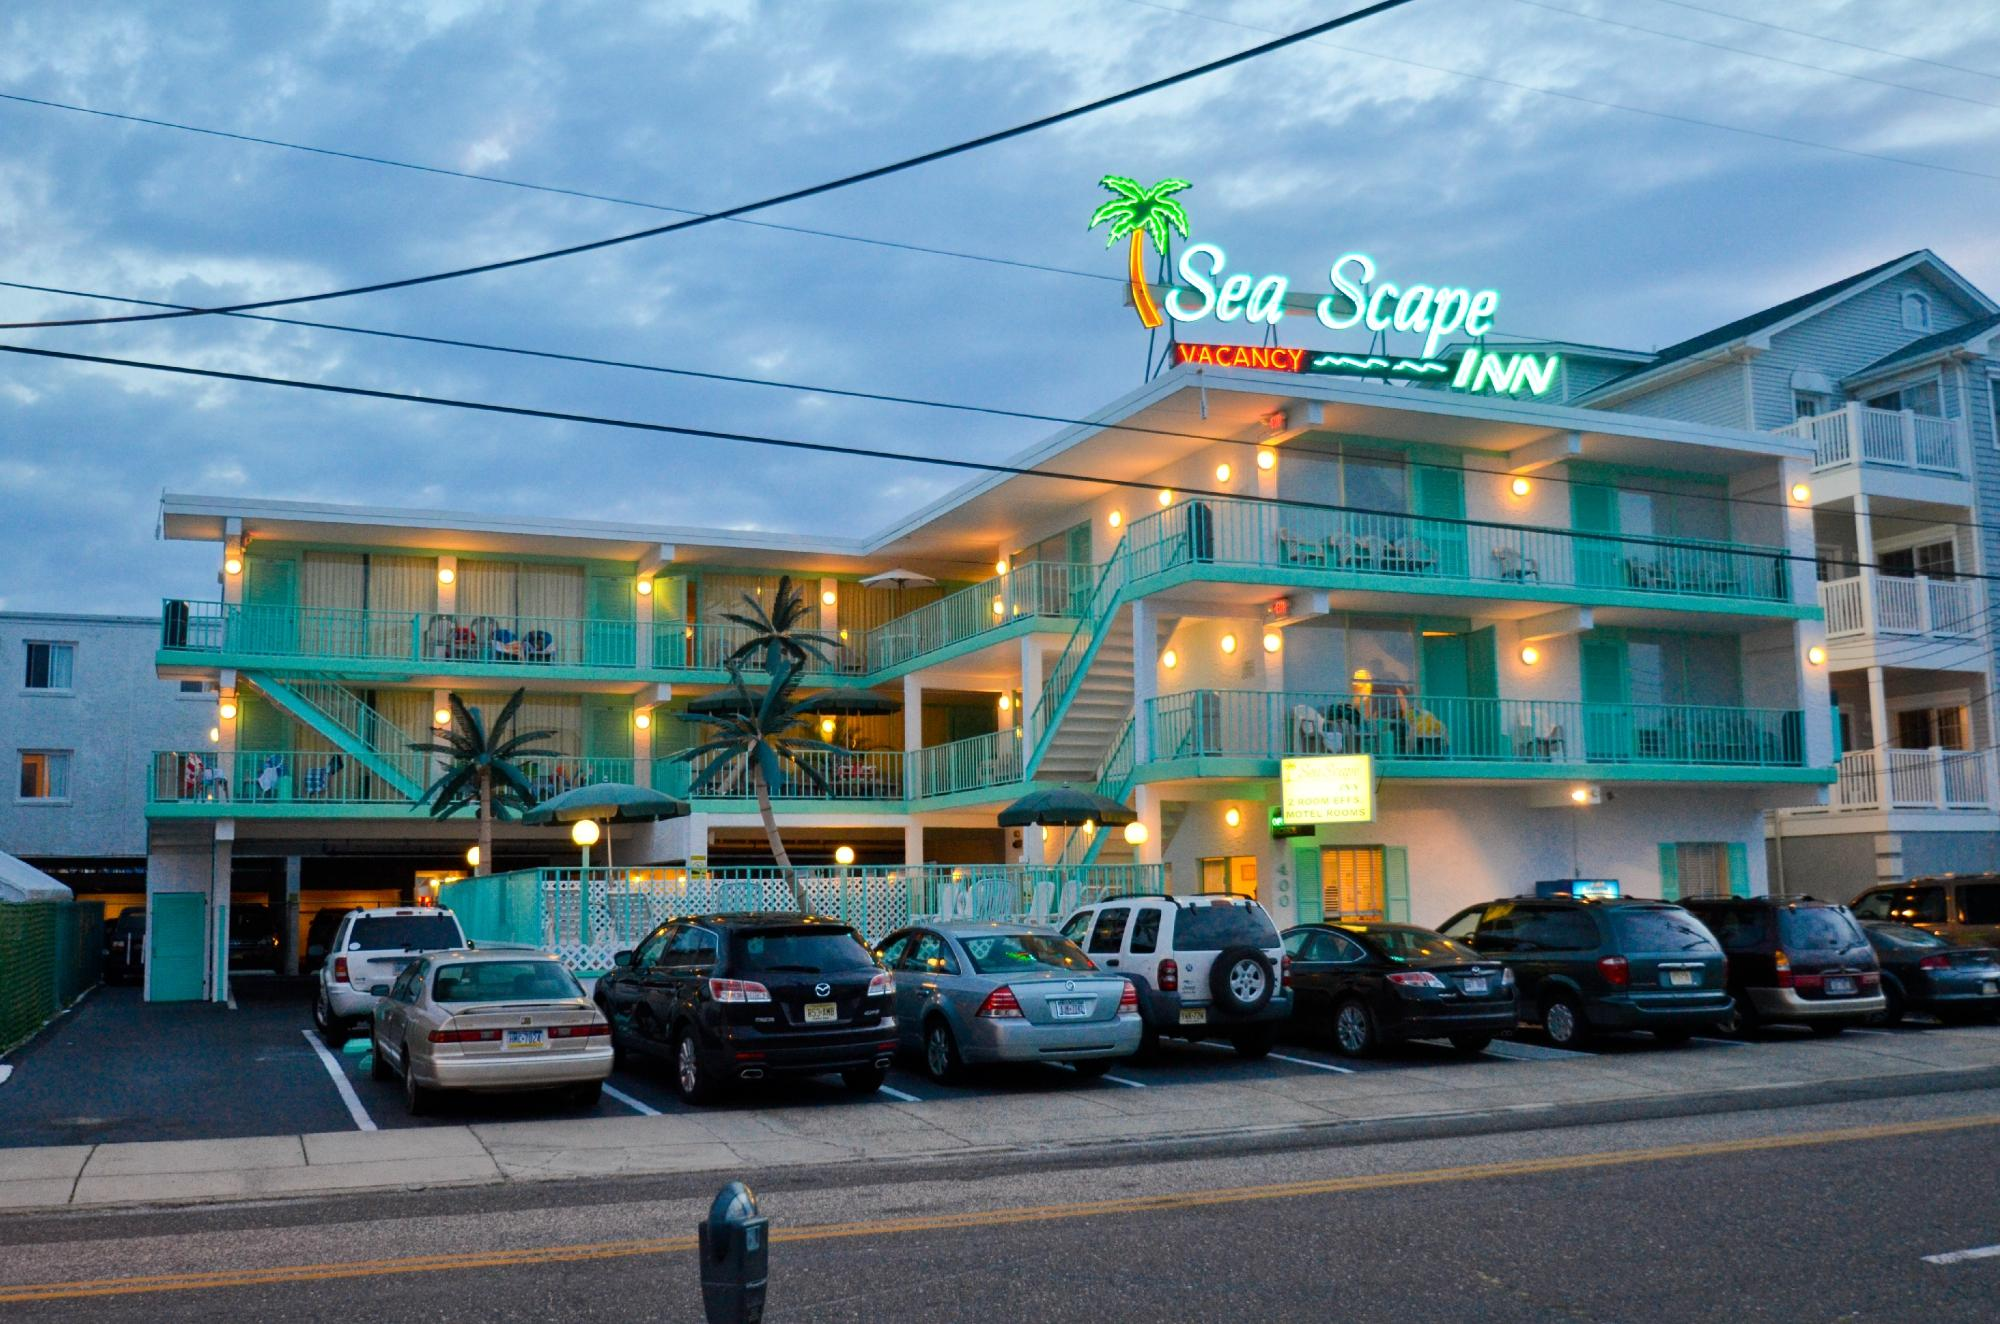 Sea Scape Inn Updated 2017 Prices Motel Reviews Wildwood Crest Nj Tripadvisor